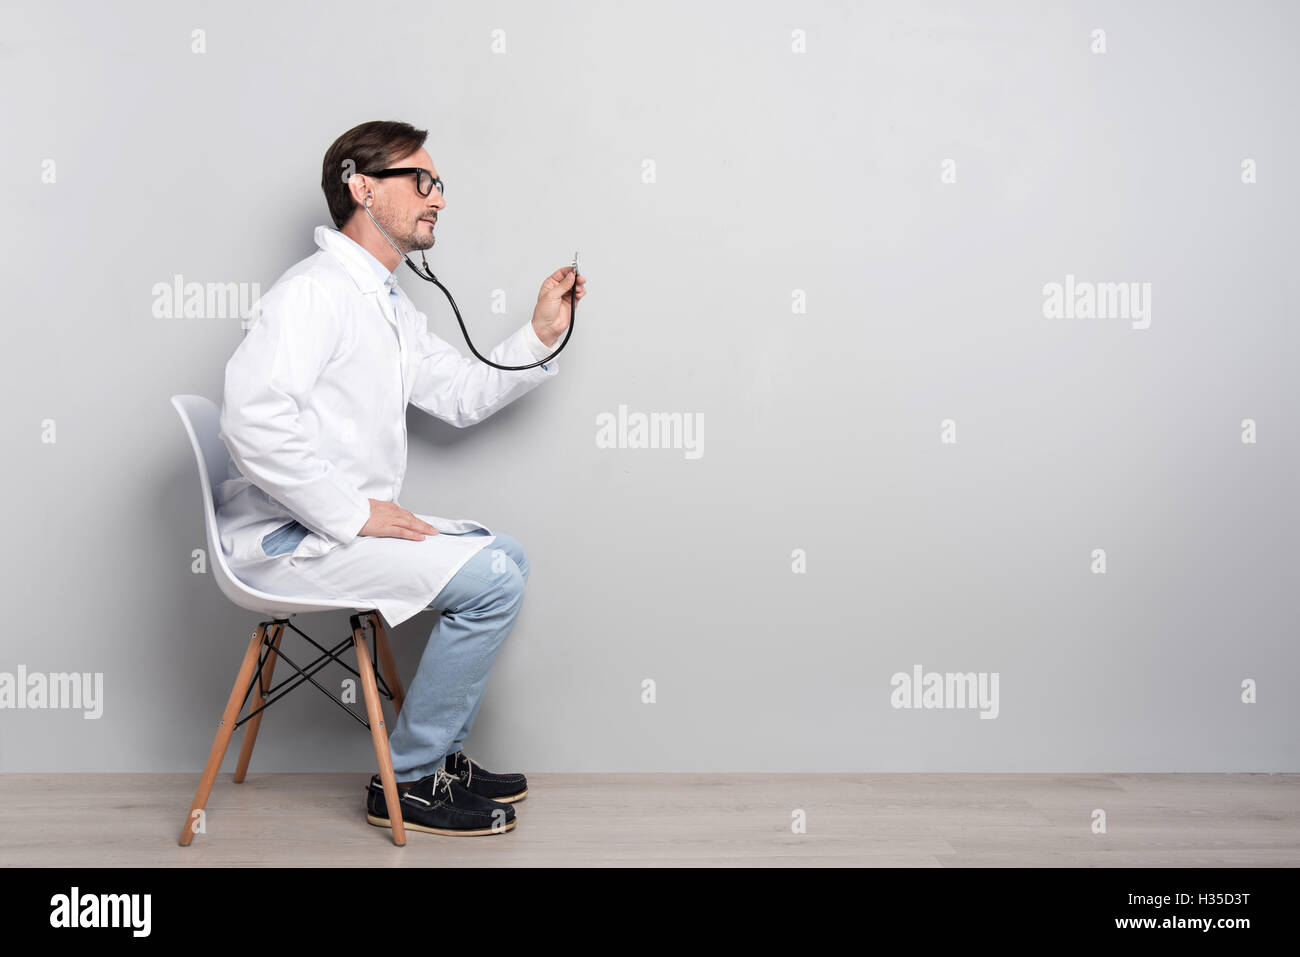 Handsome doctor diagnosing the patient - Stock Image